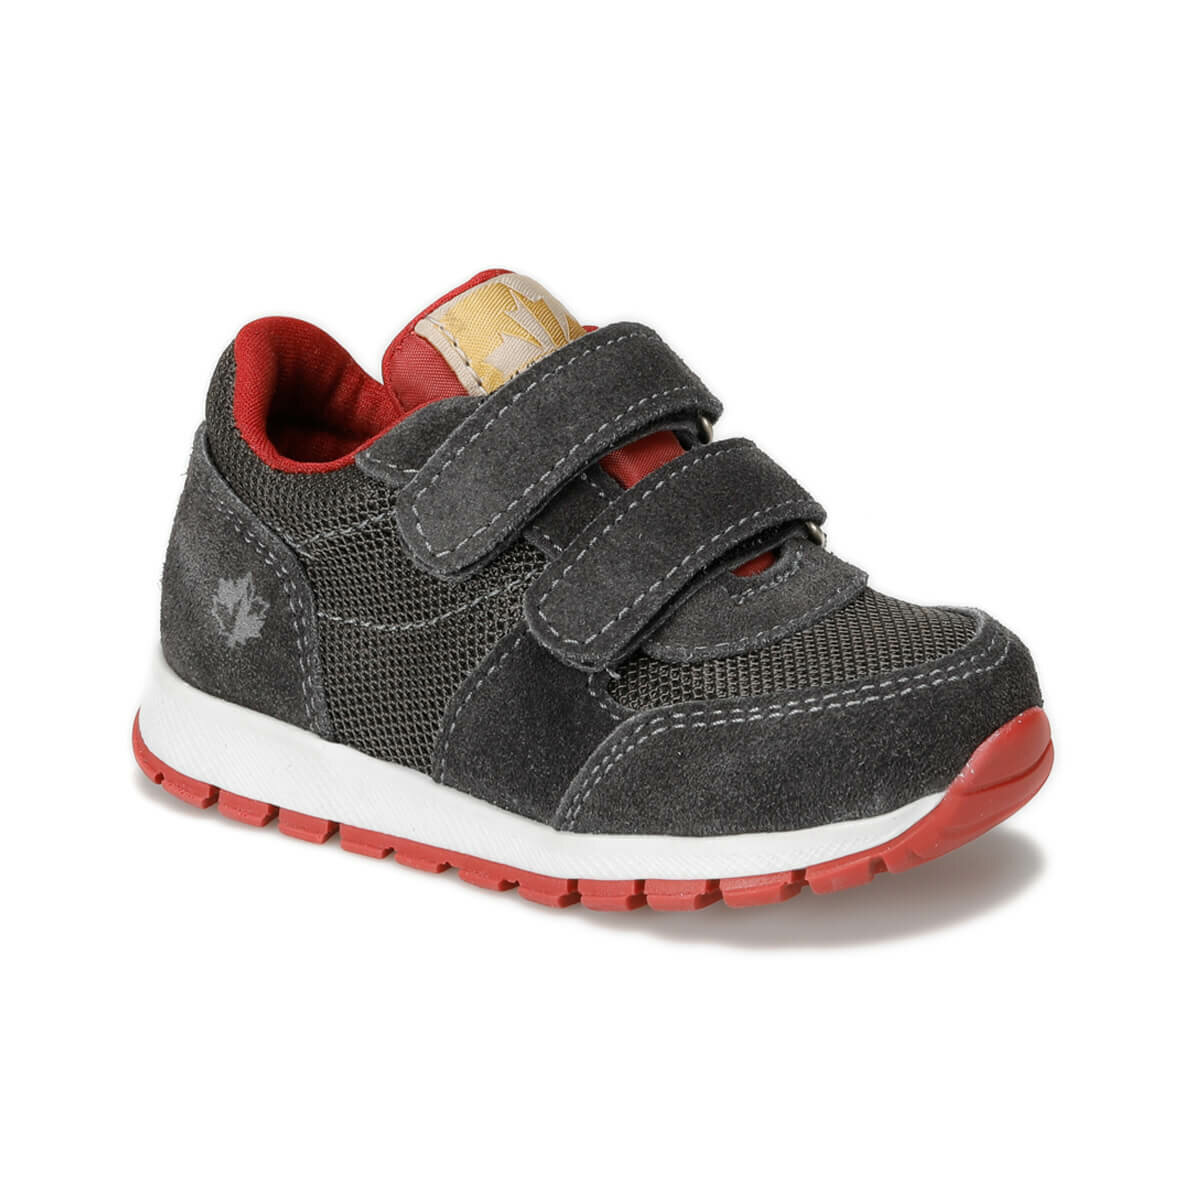 FLO TEXT 9PR Dark Gray Male Child Hiking Shoes LUMBERJACK